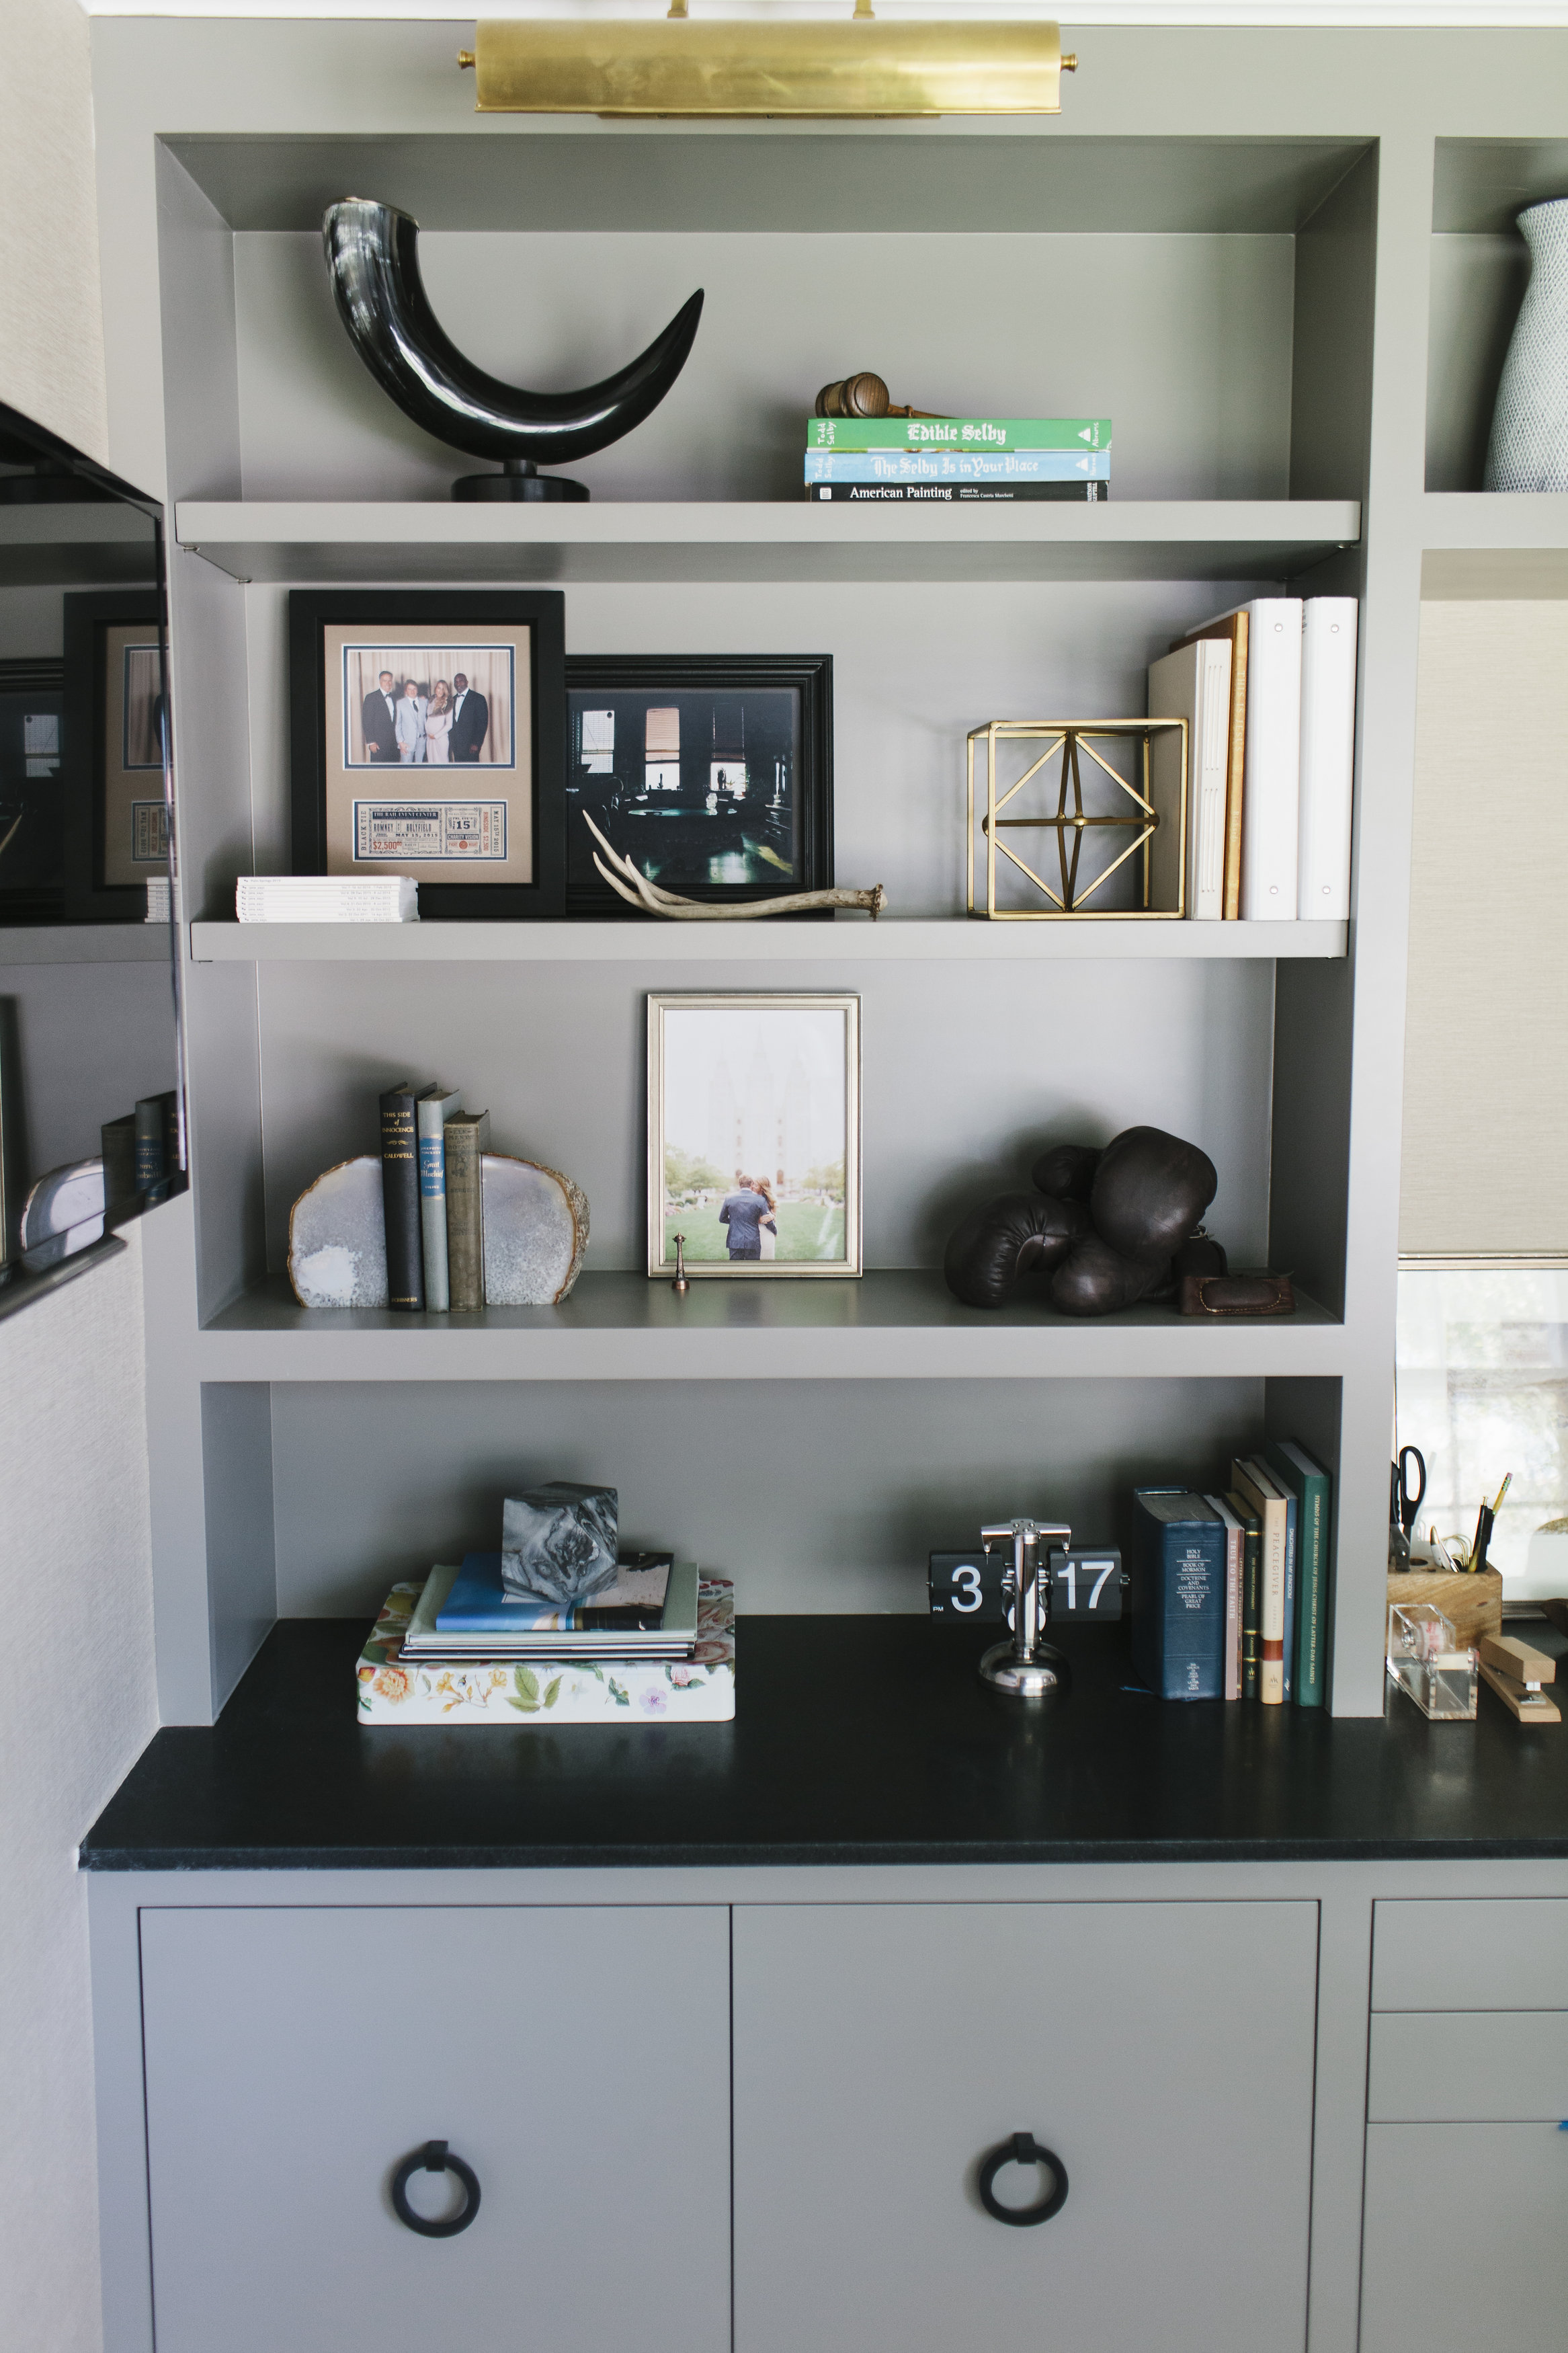 Collected built-in styling by Studio McGee